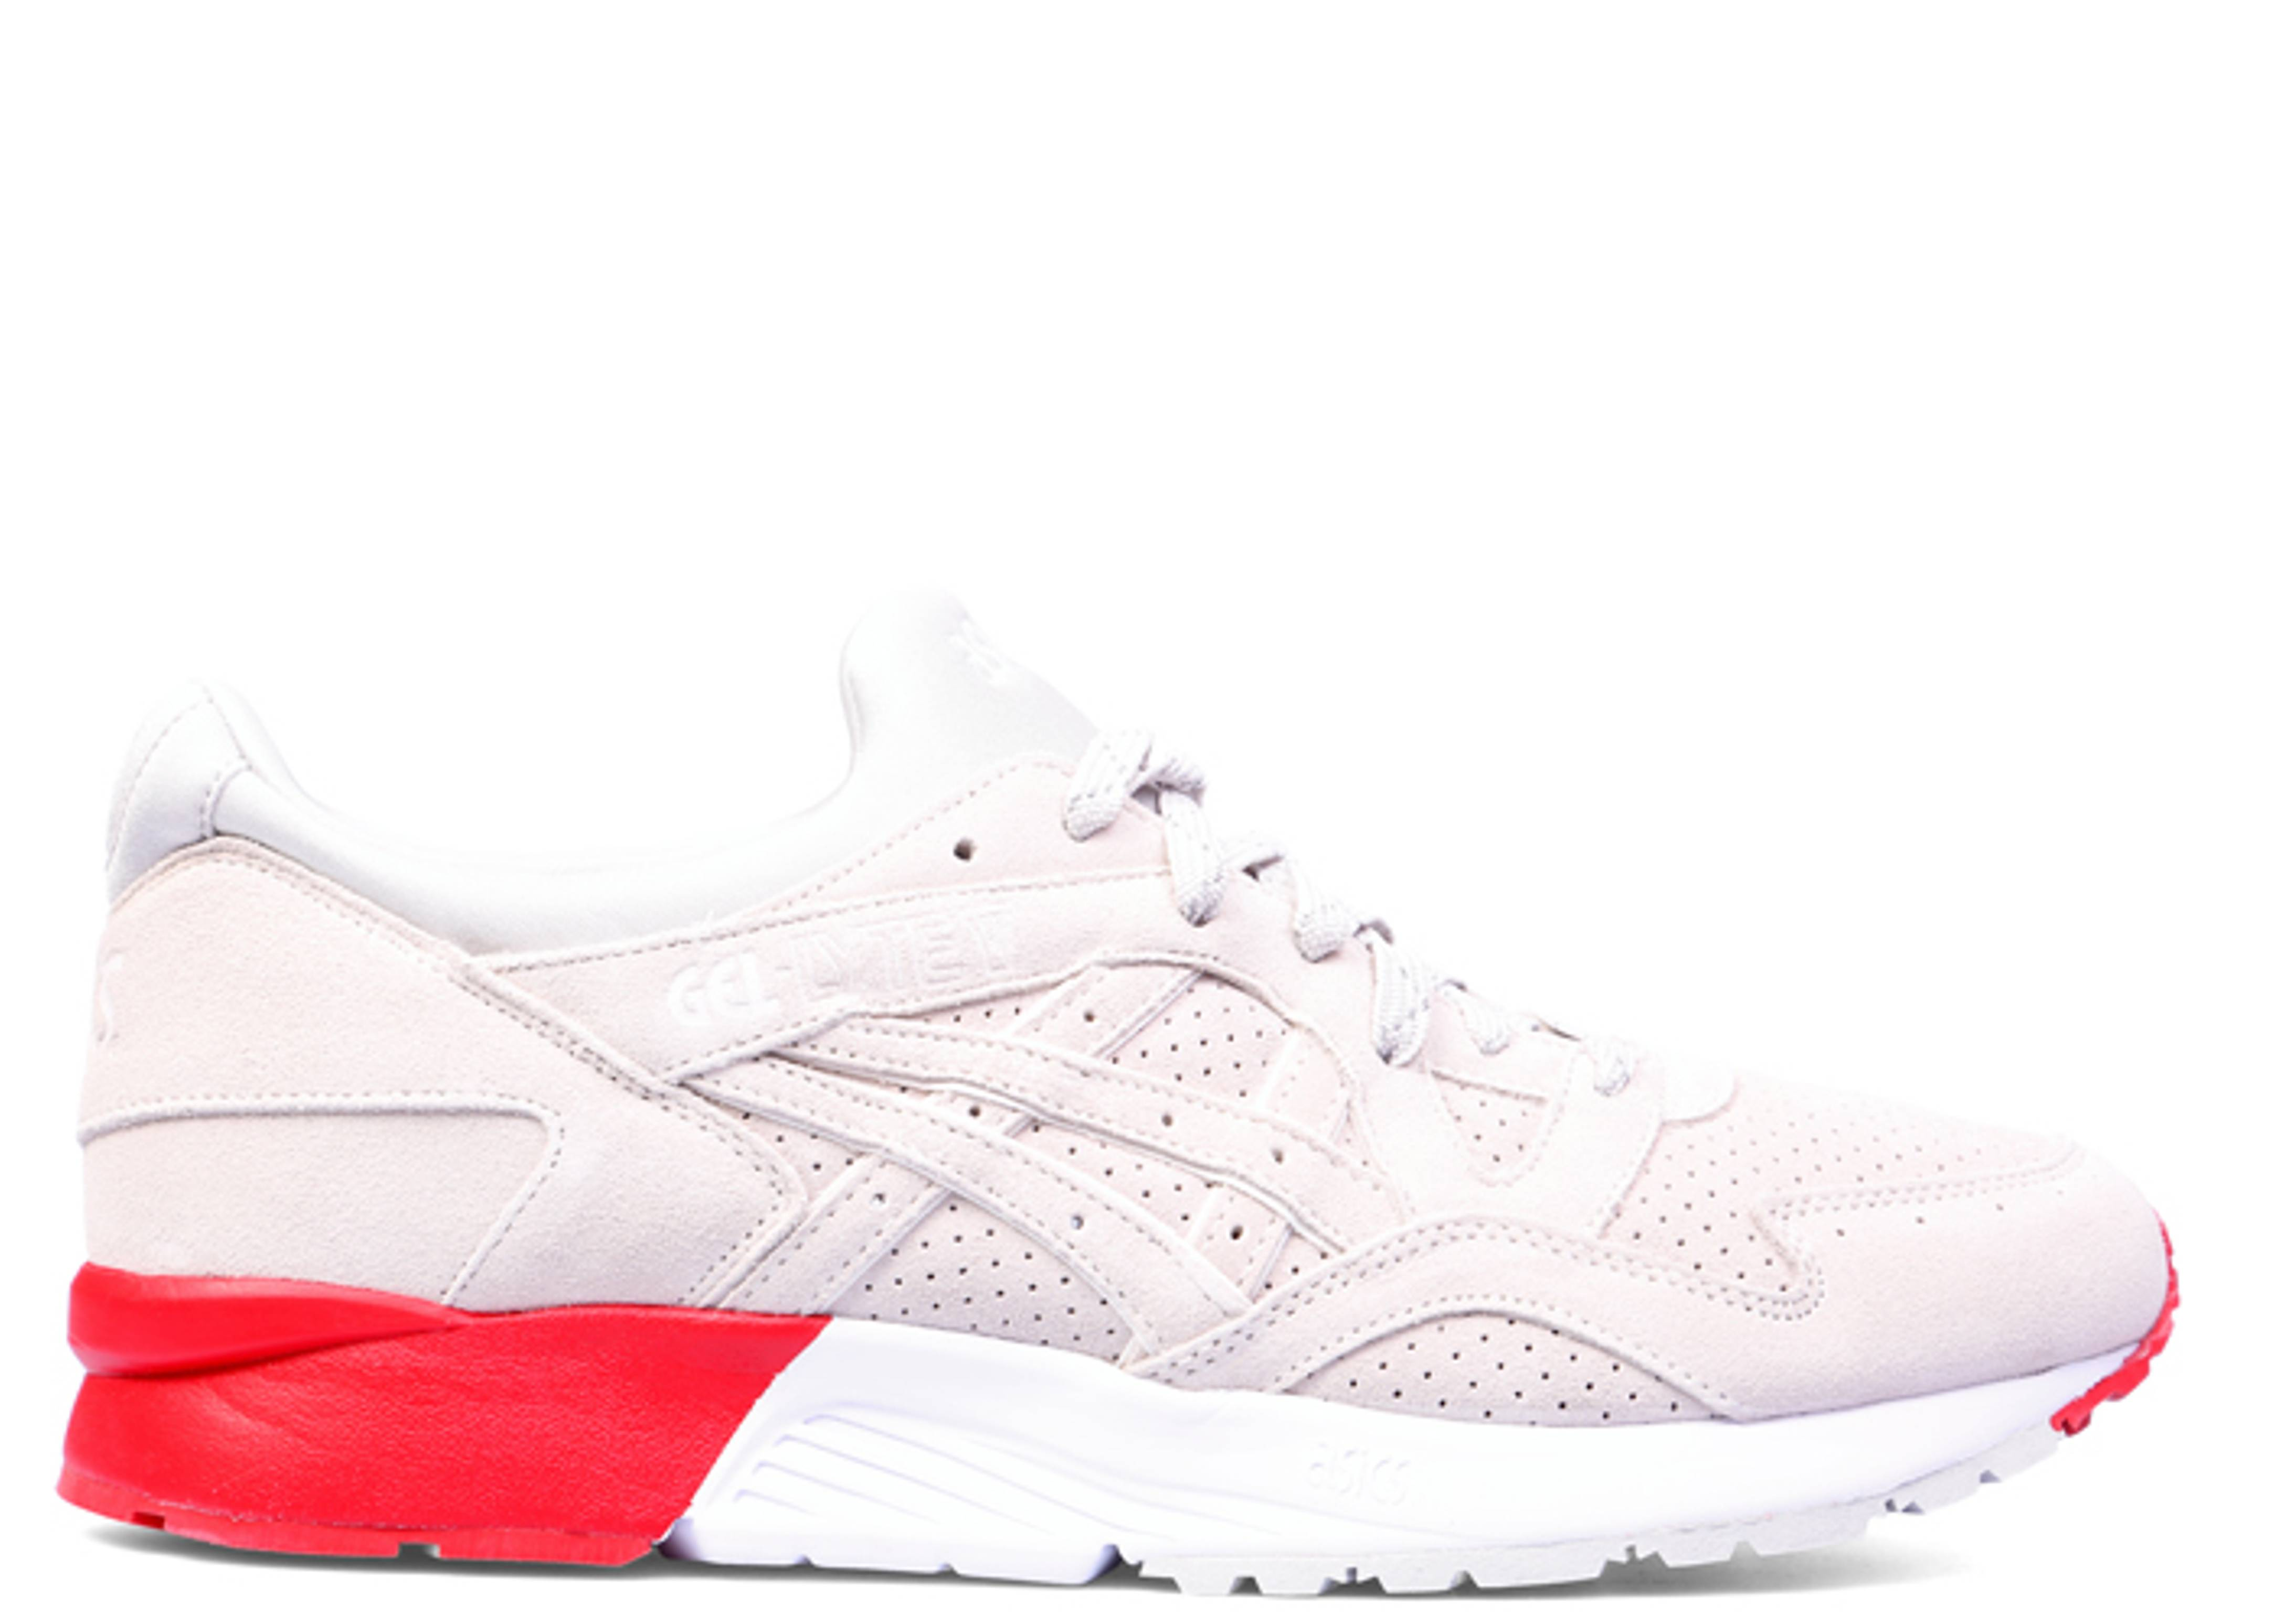 """gel-lyte 5 """"concepts """"8ball"""""""""""